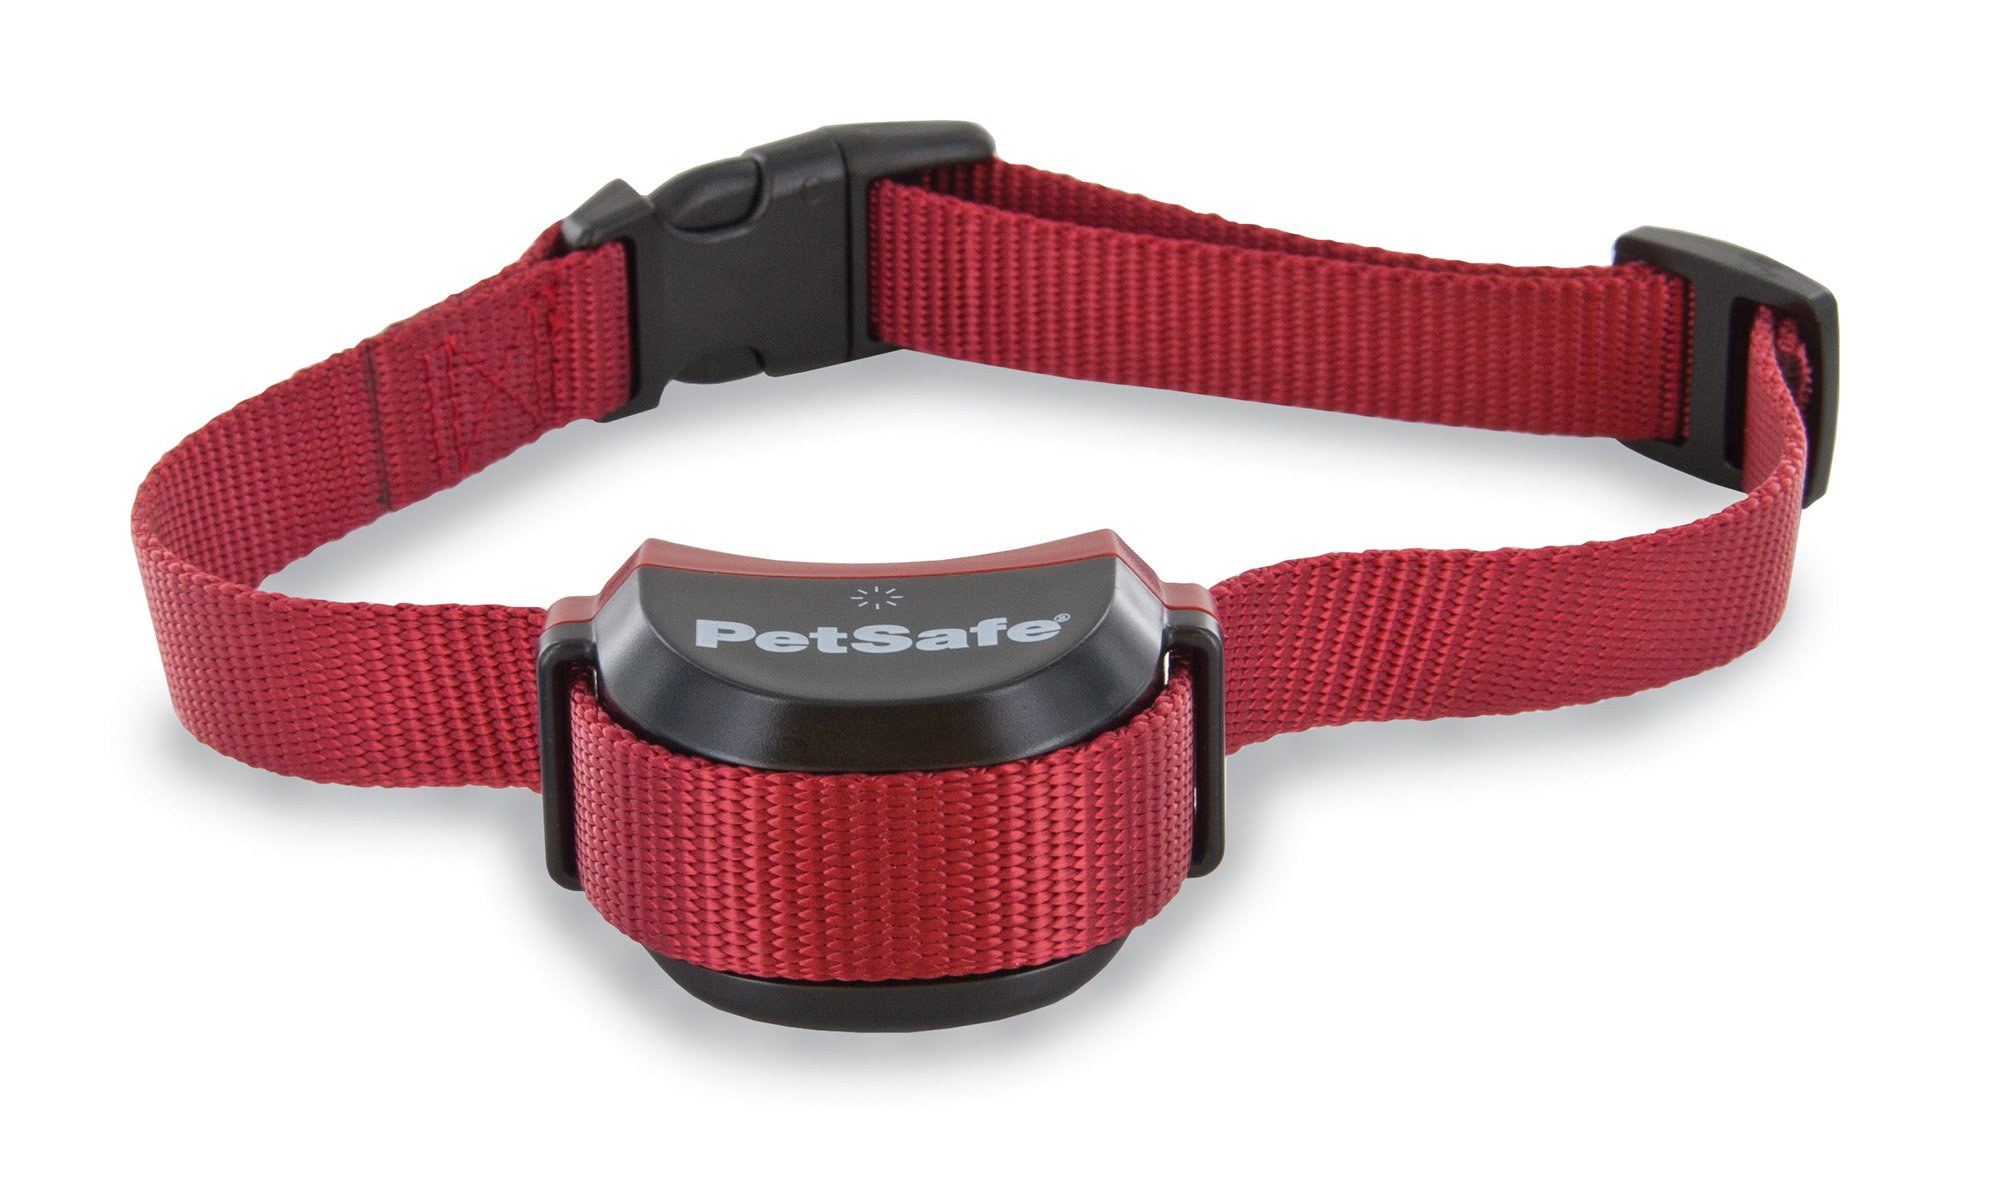 PetSafe Stubborn Dog Stay and Play Wireless Fence Receiver Collar, Waterproof and Rechargeable, Tone and Static Correction by PetSafe